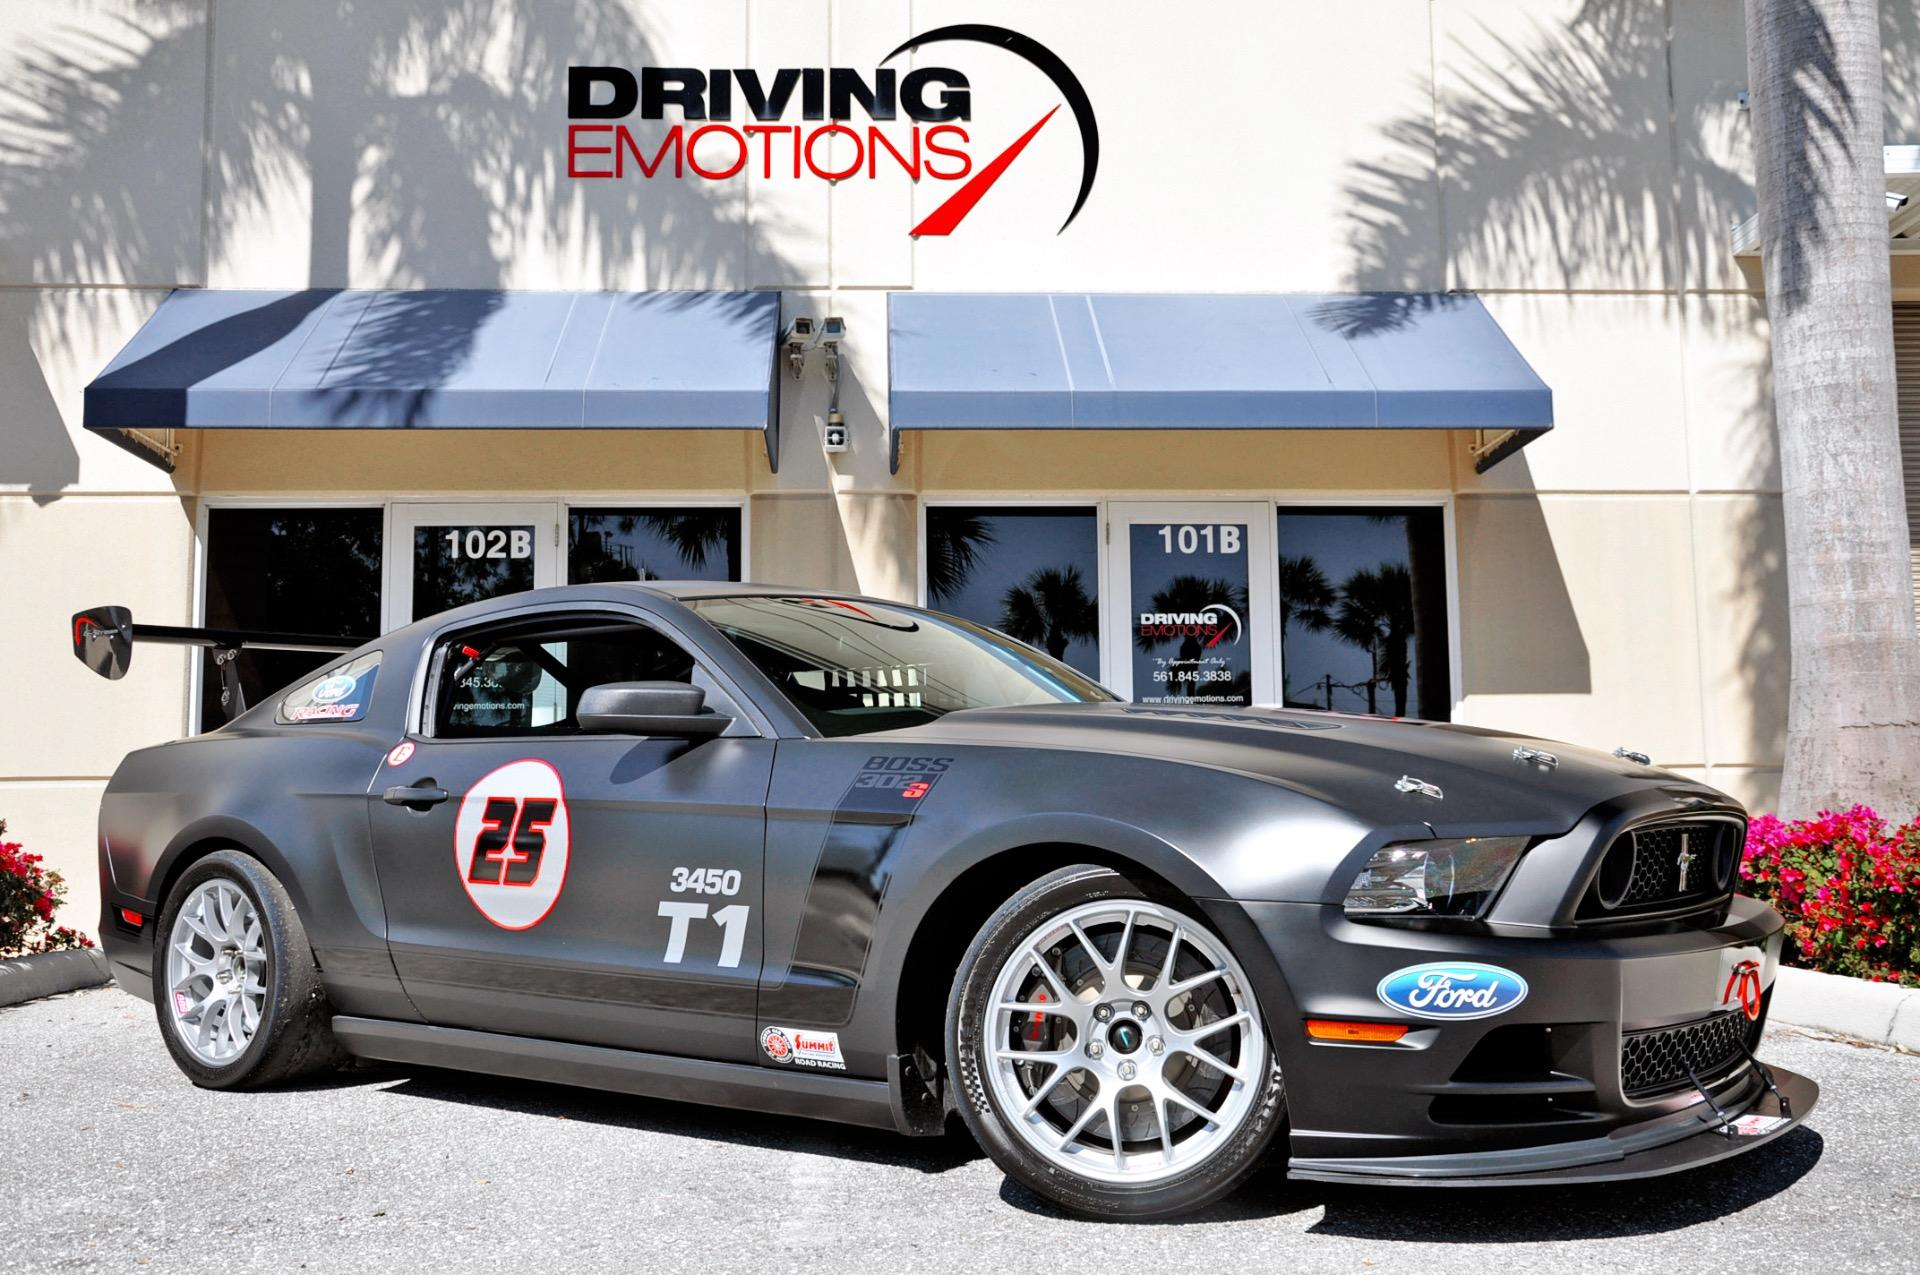 2014 Ford Mustang Boss 302s Race Car Stock 6015 For Sale Near Lake